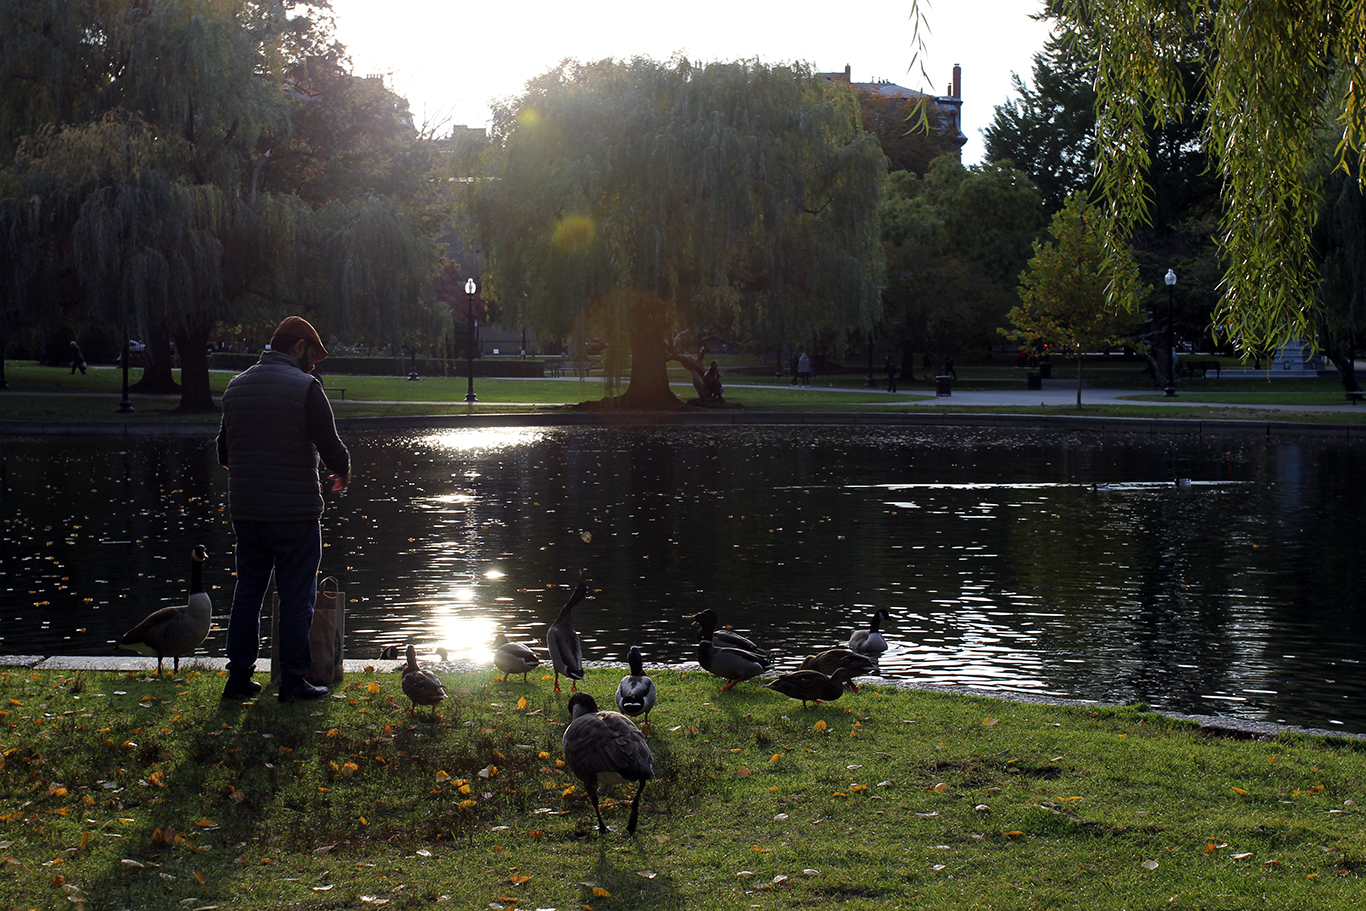 Feeding Ducks & Geese at Boston Common